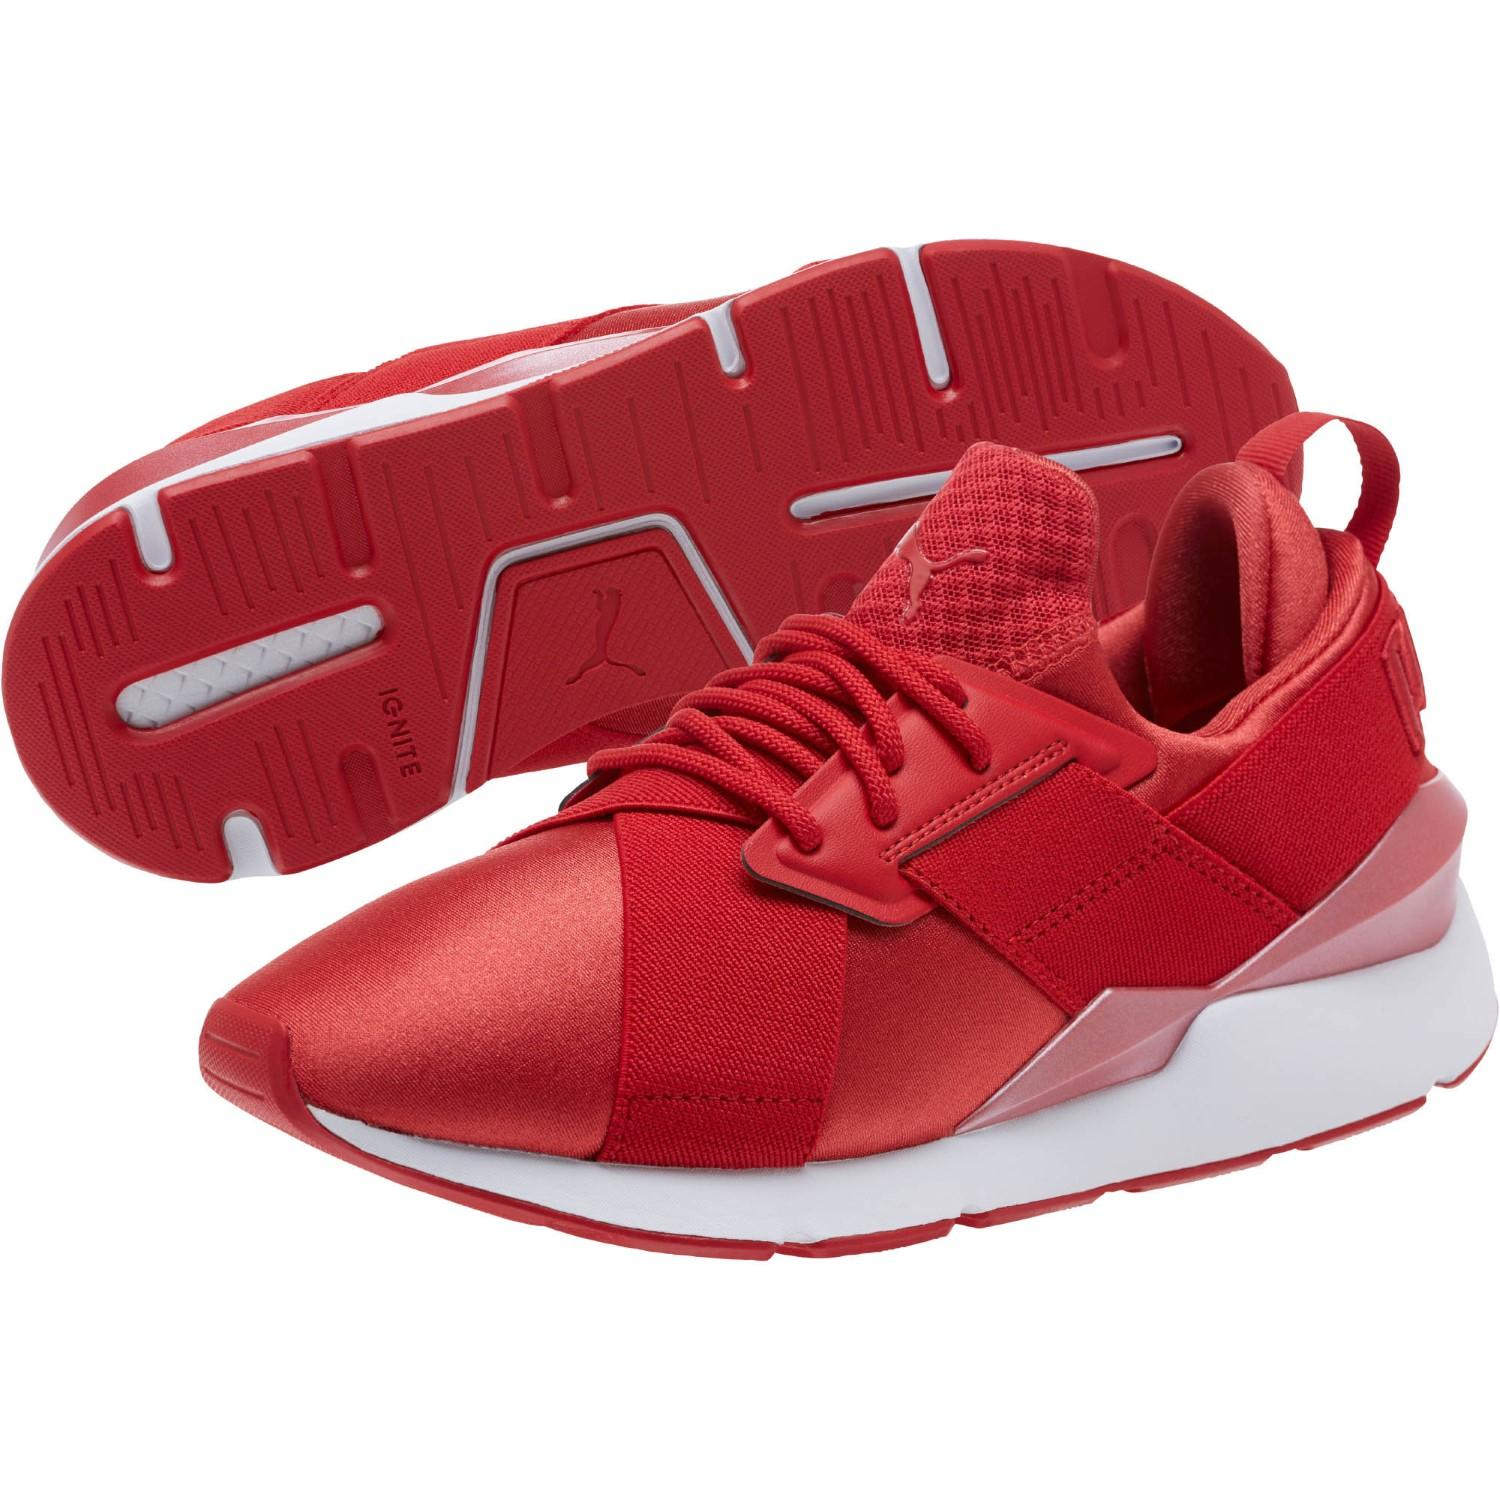 a53520e7f63b Lyst - Puma Muse Satin Ep Pearl Sneakers in Red